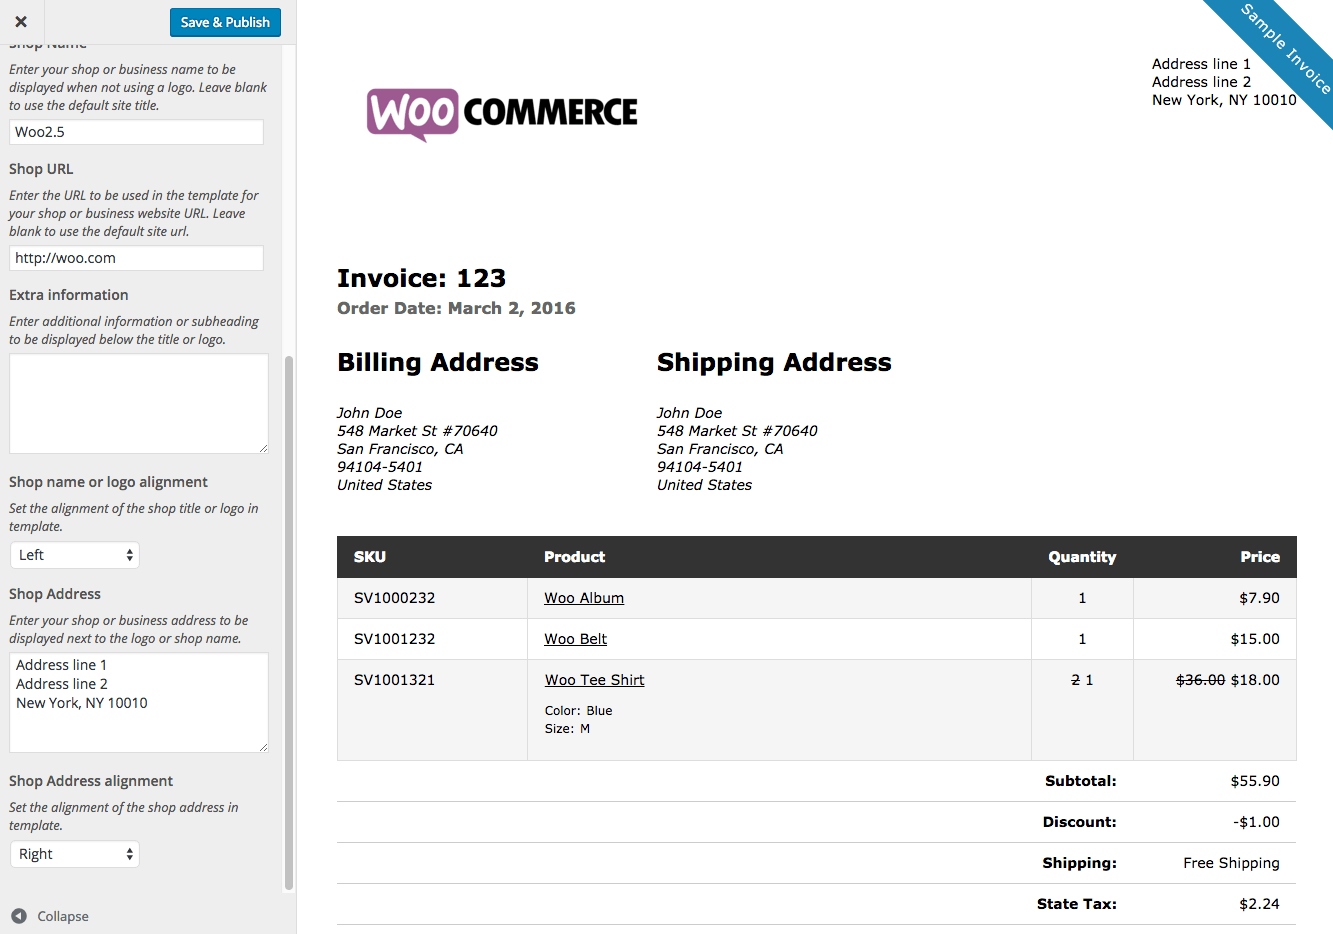 Sandiegolocksmithsus  Terrific Print Invoices Amp Packing Lists  Woocommerce With Handsome Woocommerce Print Invoices  Packing Lists Customizer With Breathtaking Ups Invoice Form Also Online Invoiceing In Addition How Much Is Invoice Below Msrp And Invoice On New Cars As Well As Xls Invoice Template Additionally How To Send Invoices From Woocommercecom With Sandiegolocksmithsus  Handsome Print Invoices Amp Packing Lists  Woocommerce With Breathtaking Woocommerce Print Invoices  Packing Lists Customizer And Terrific Ups Invoice Form Also Online Invoiceing In Addition How Much Is Invoice Below Msrp From Woocommercecom